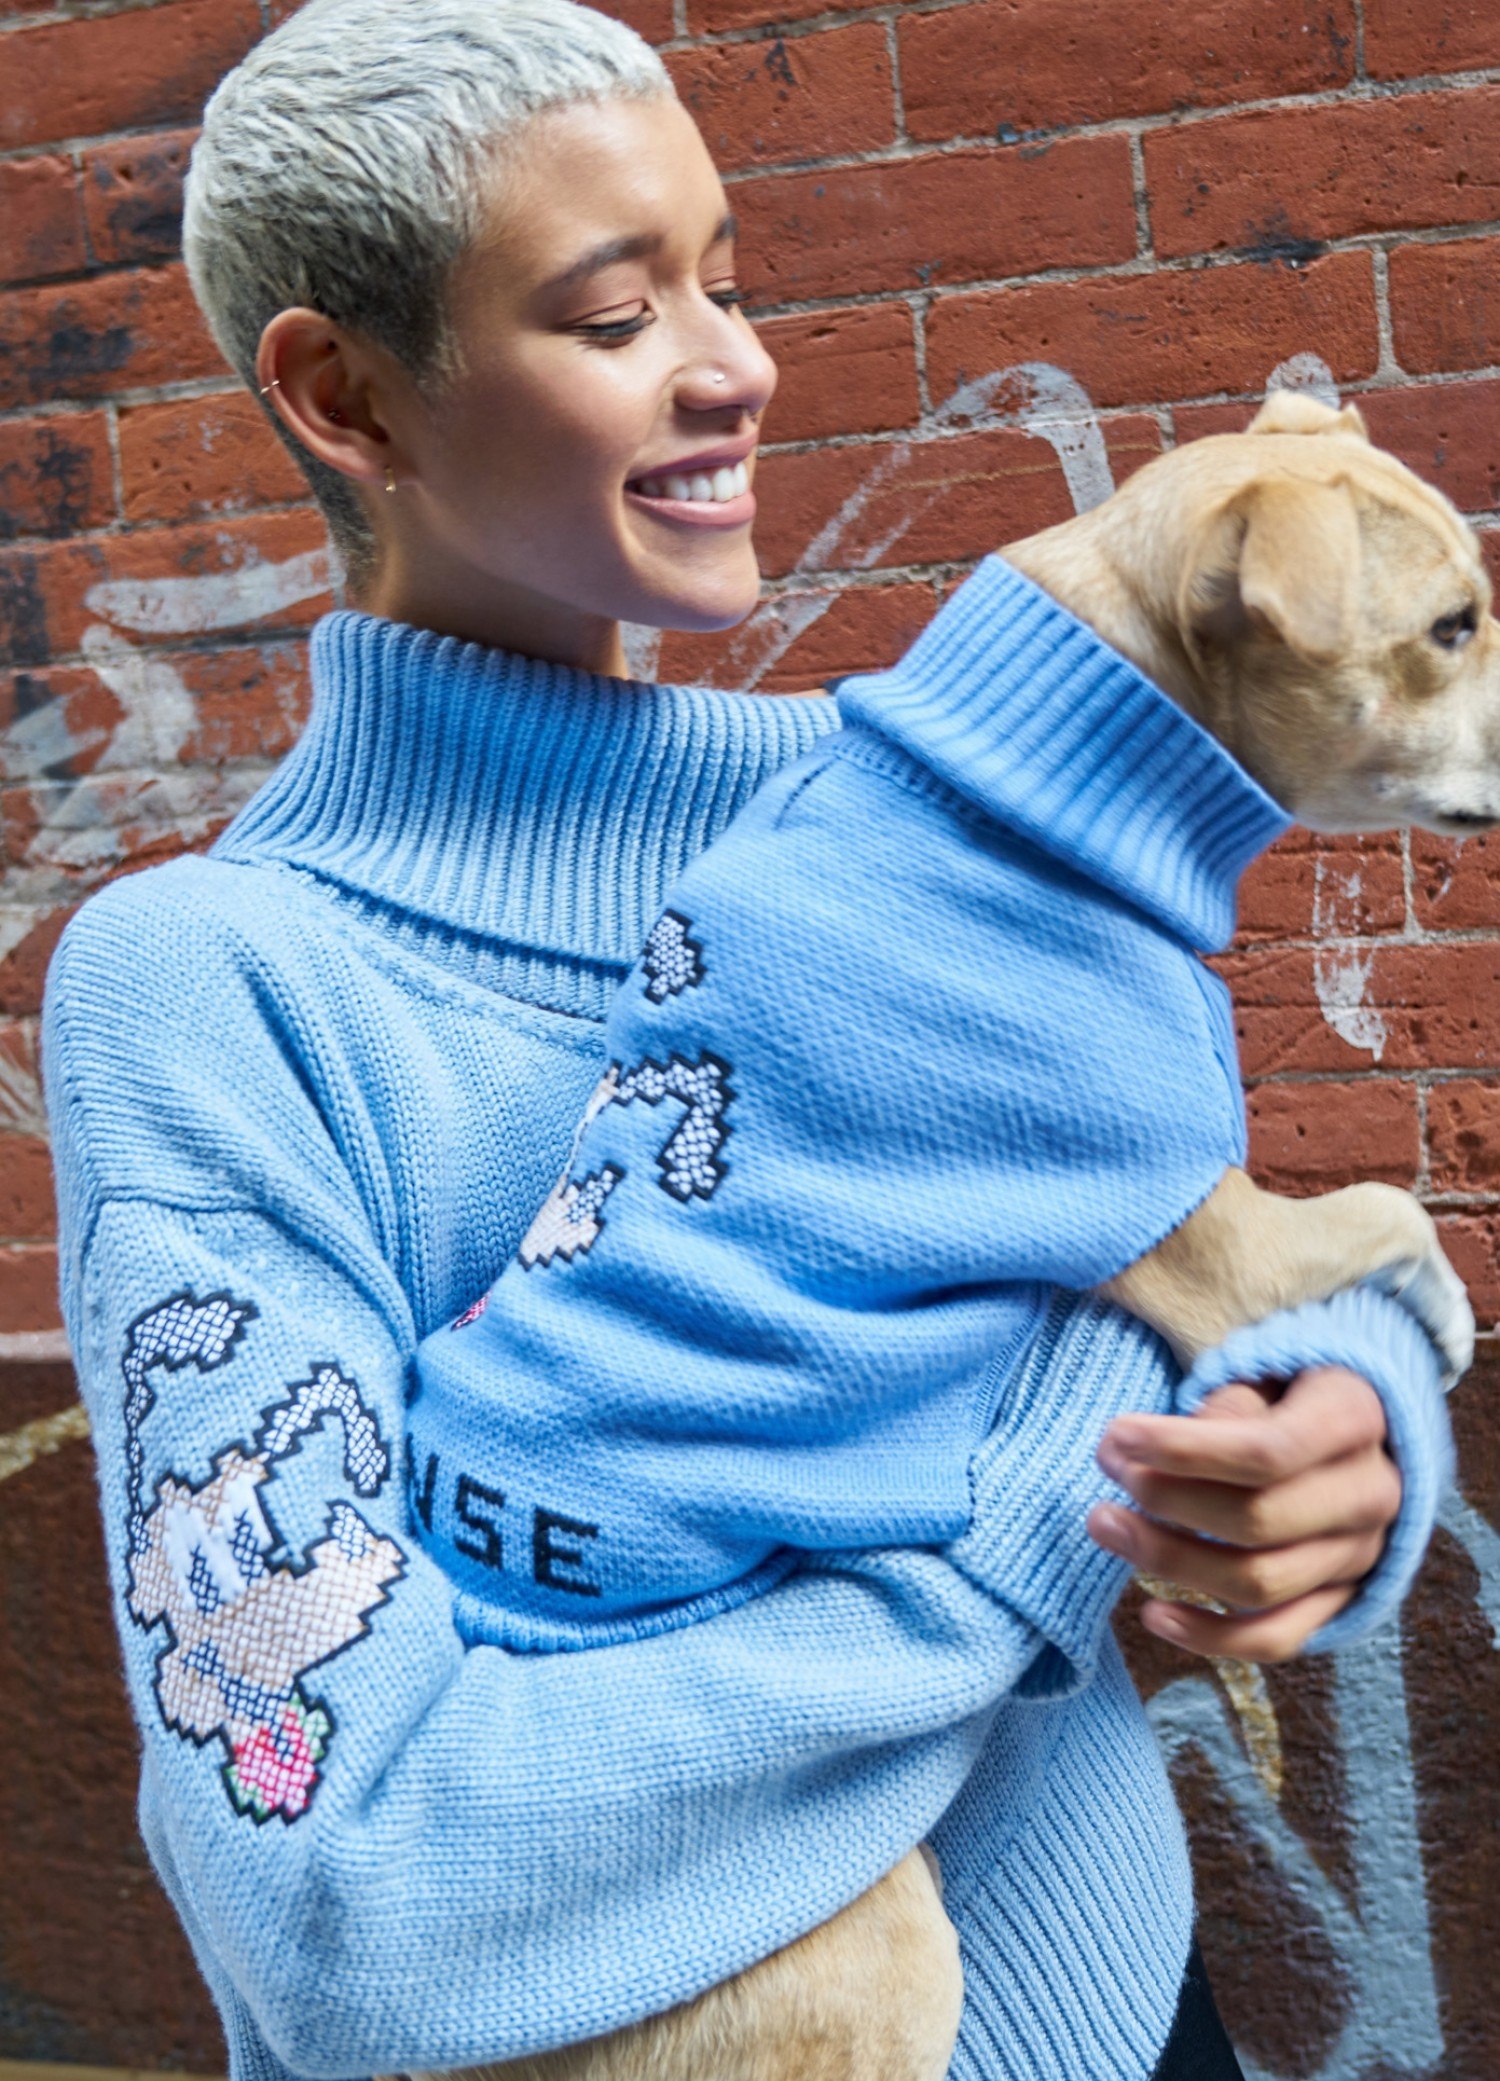 monse-dog-sweater-bunny-cross-stitch-blue.jpg